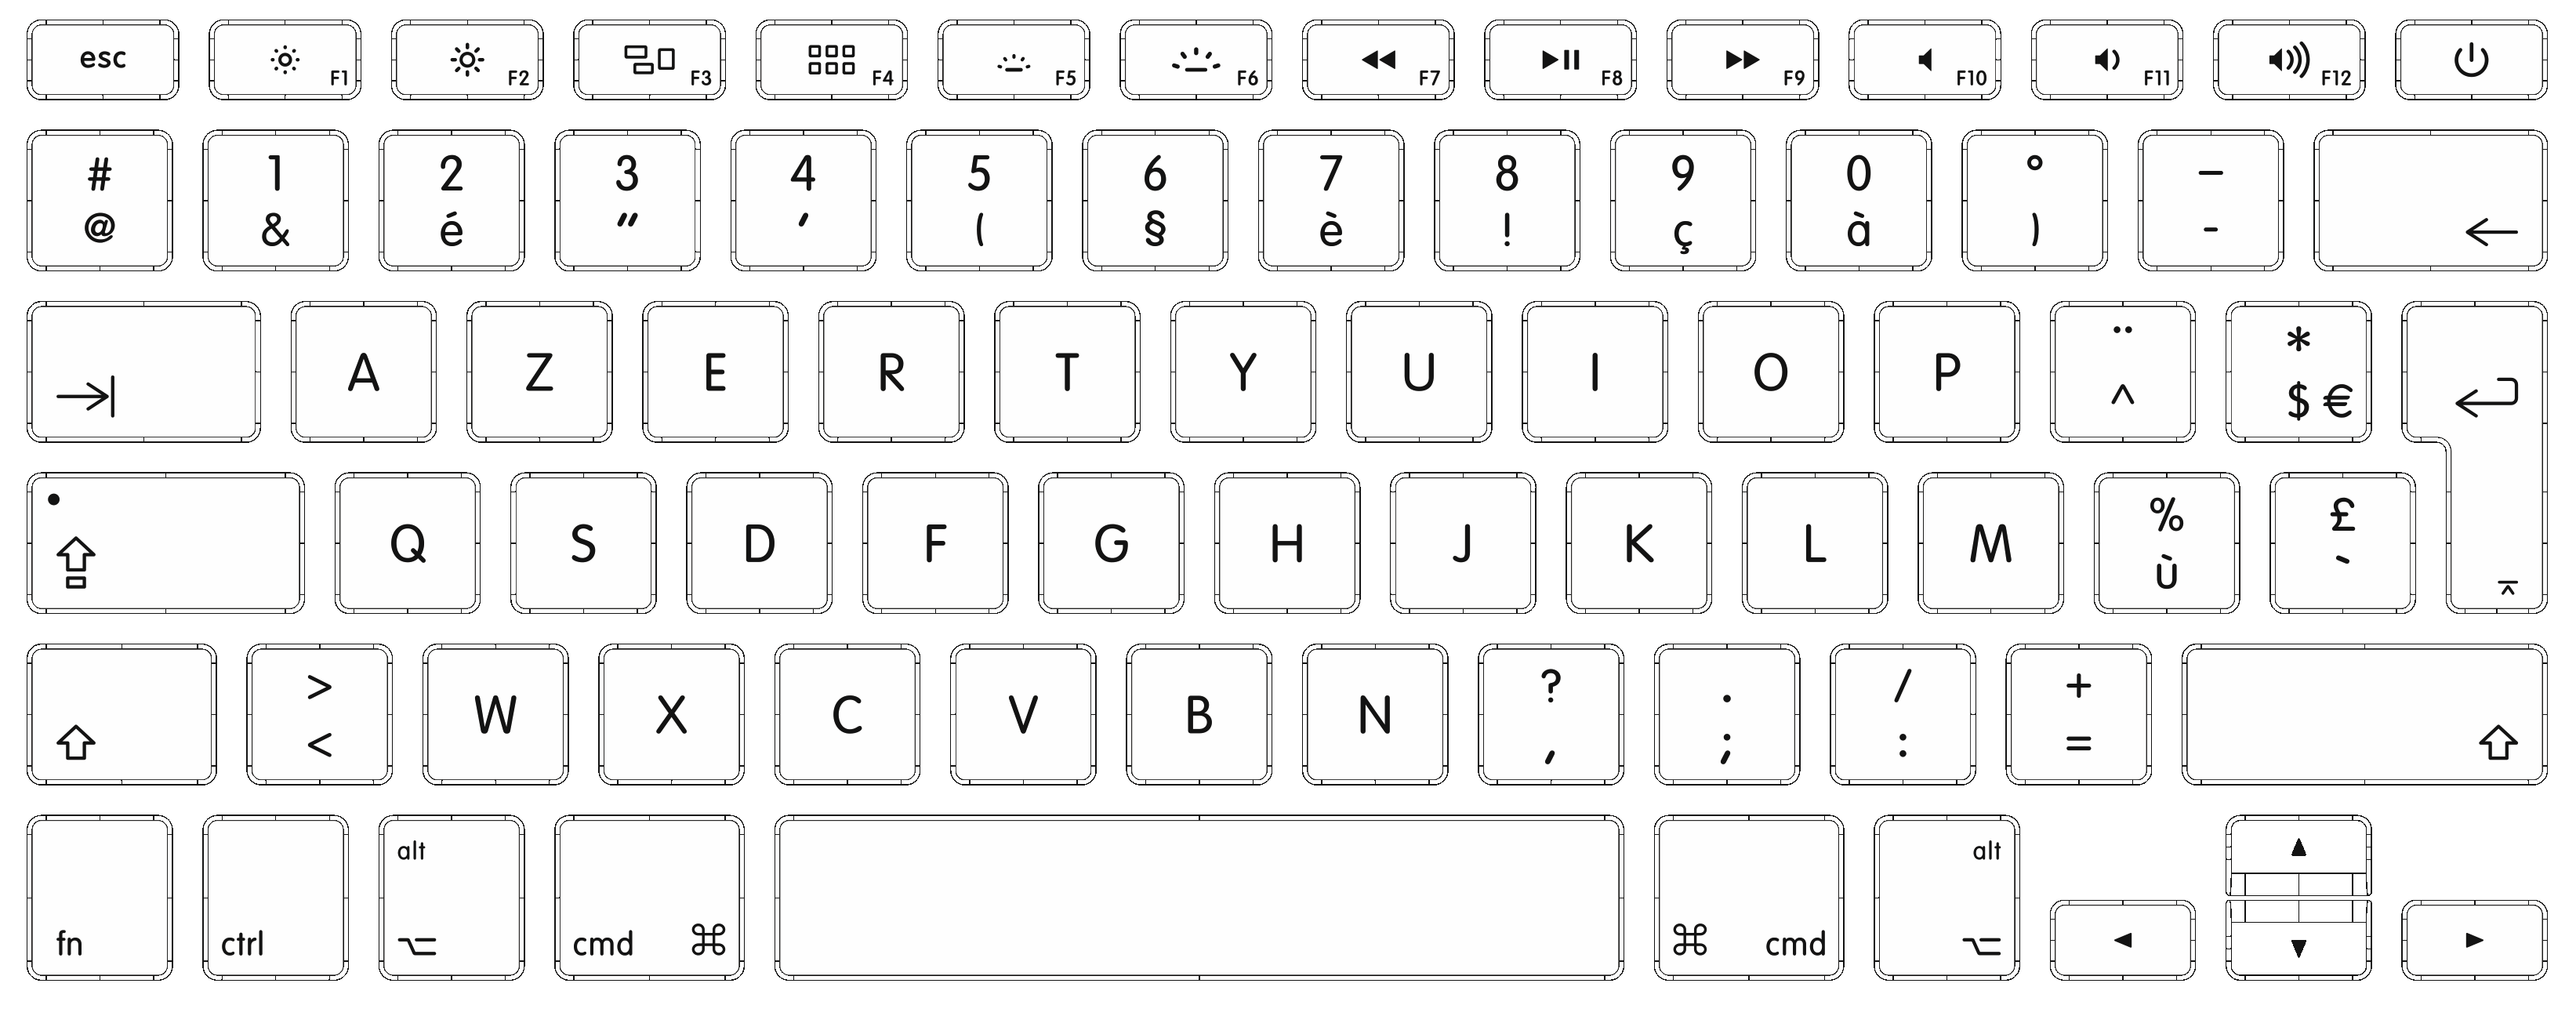 White background images all. Keyboard clipart qwerty keyboard